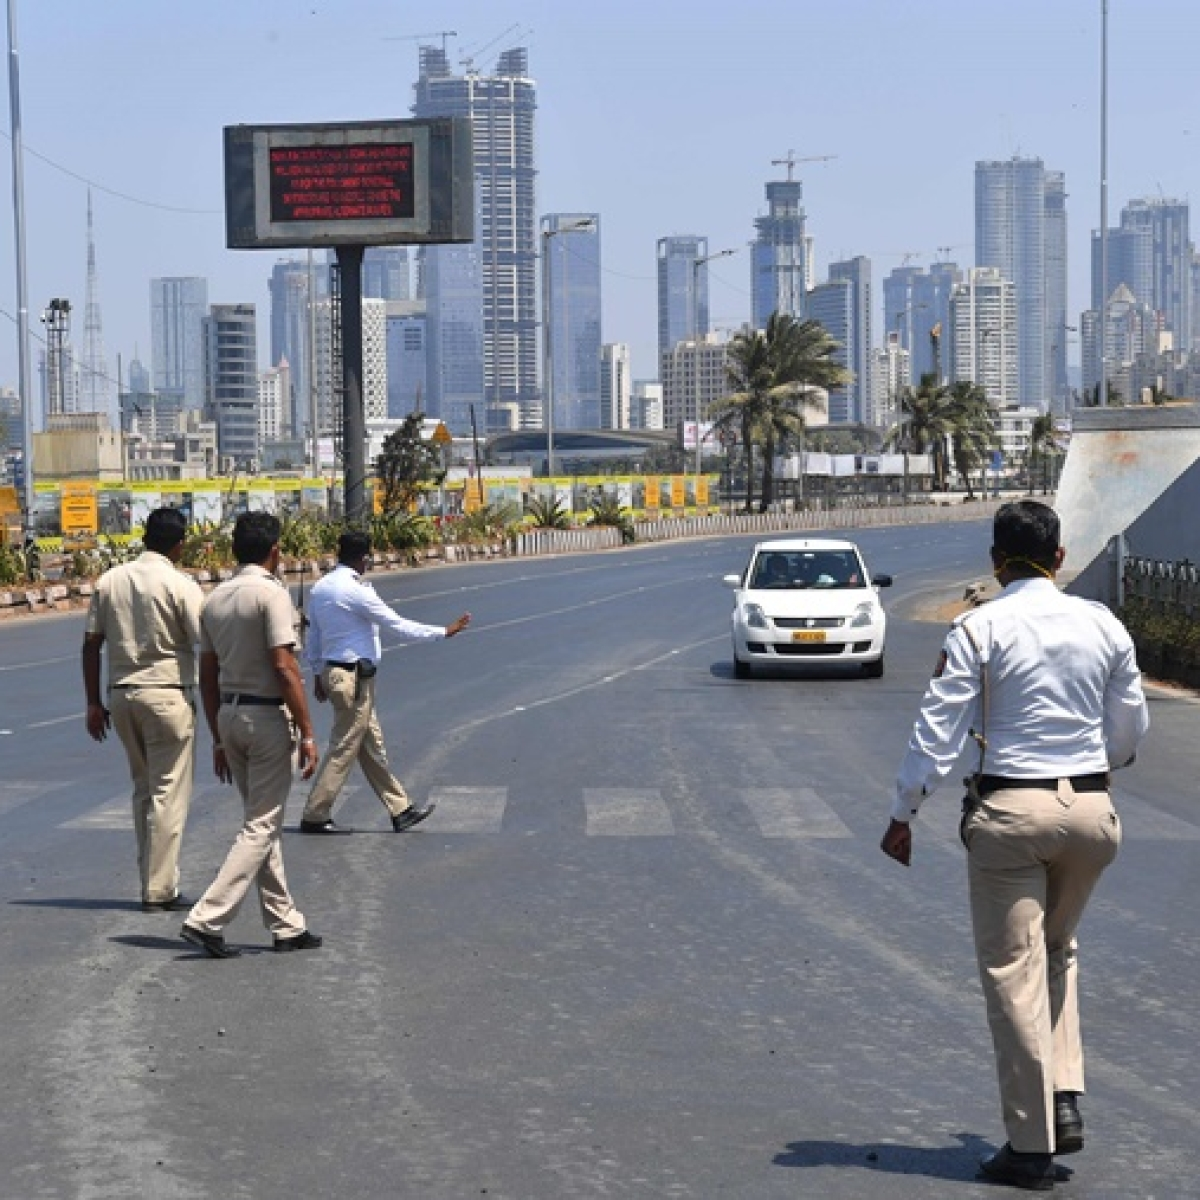 47 people arrested, 46 high-end vehicles seized for rash driving in Mumbai